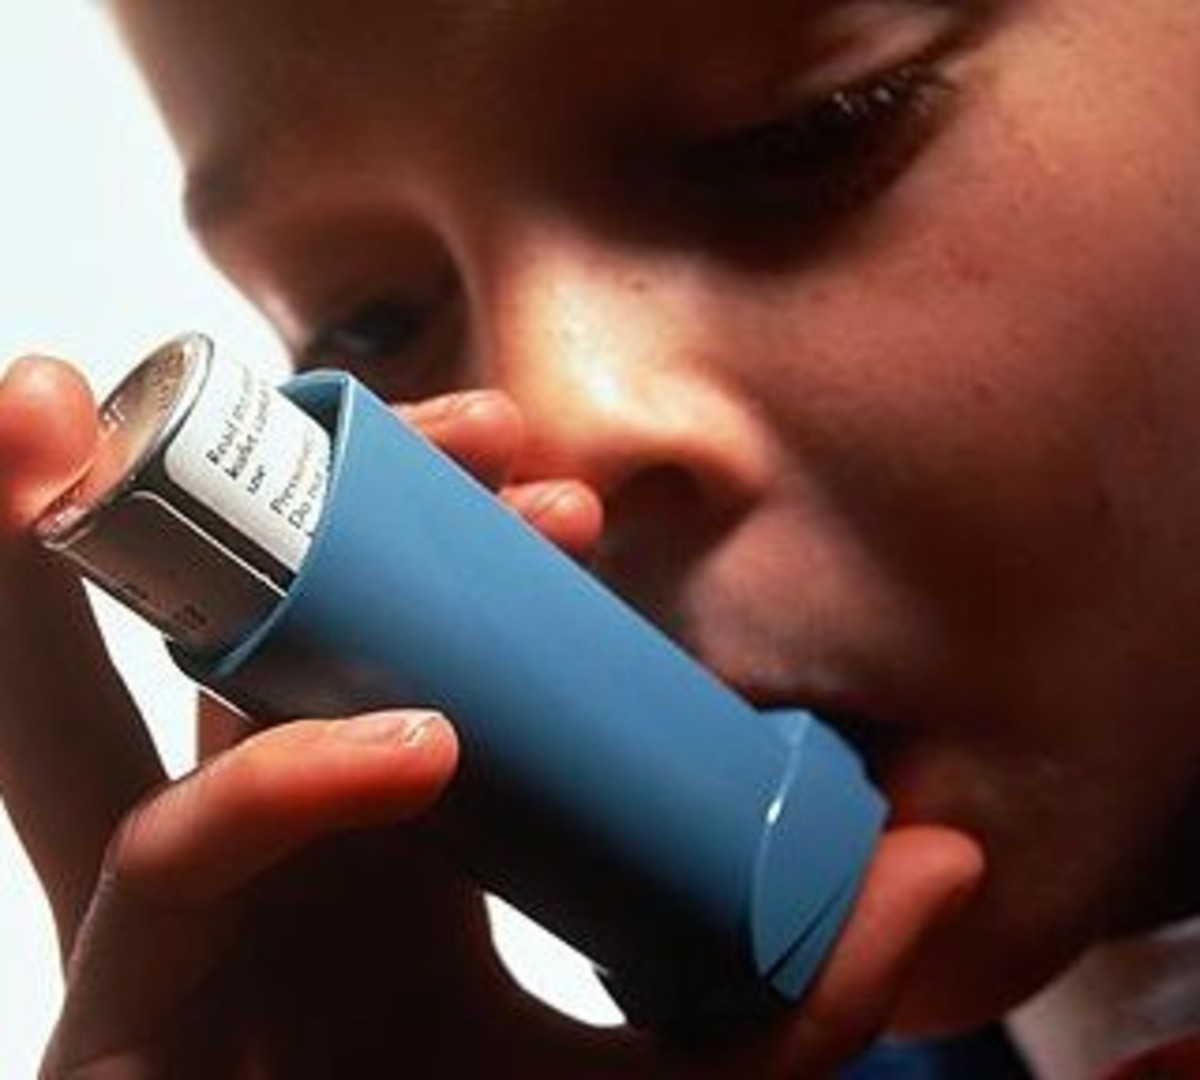 Learn to correctly use inhalers!